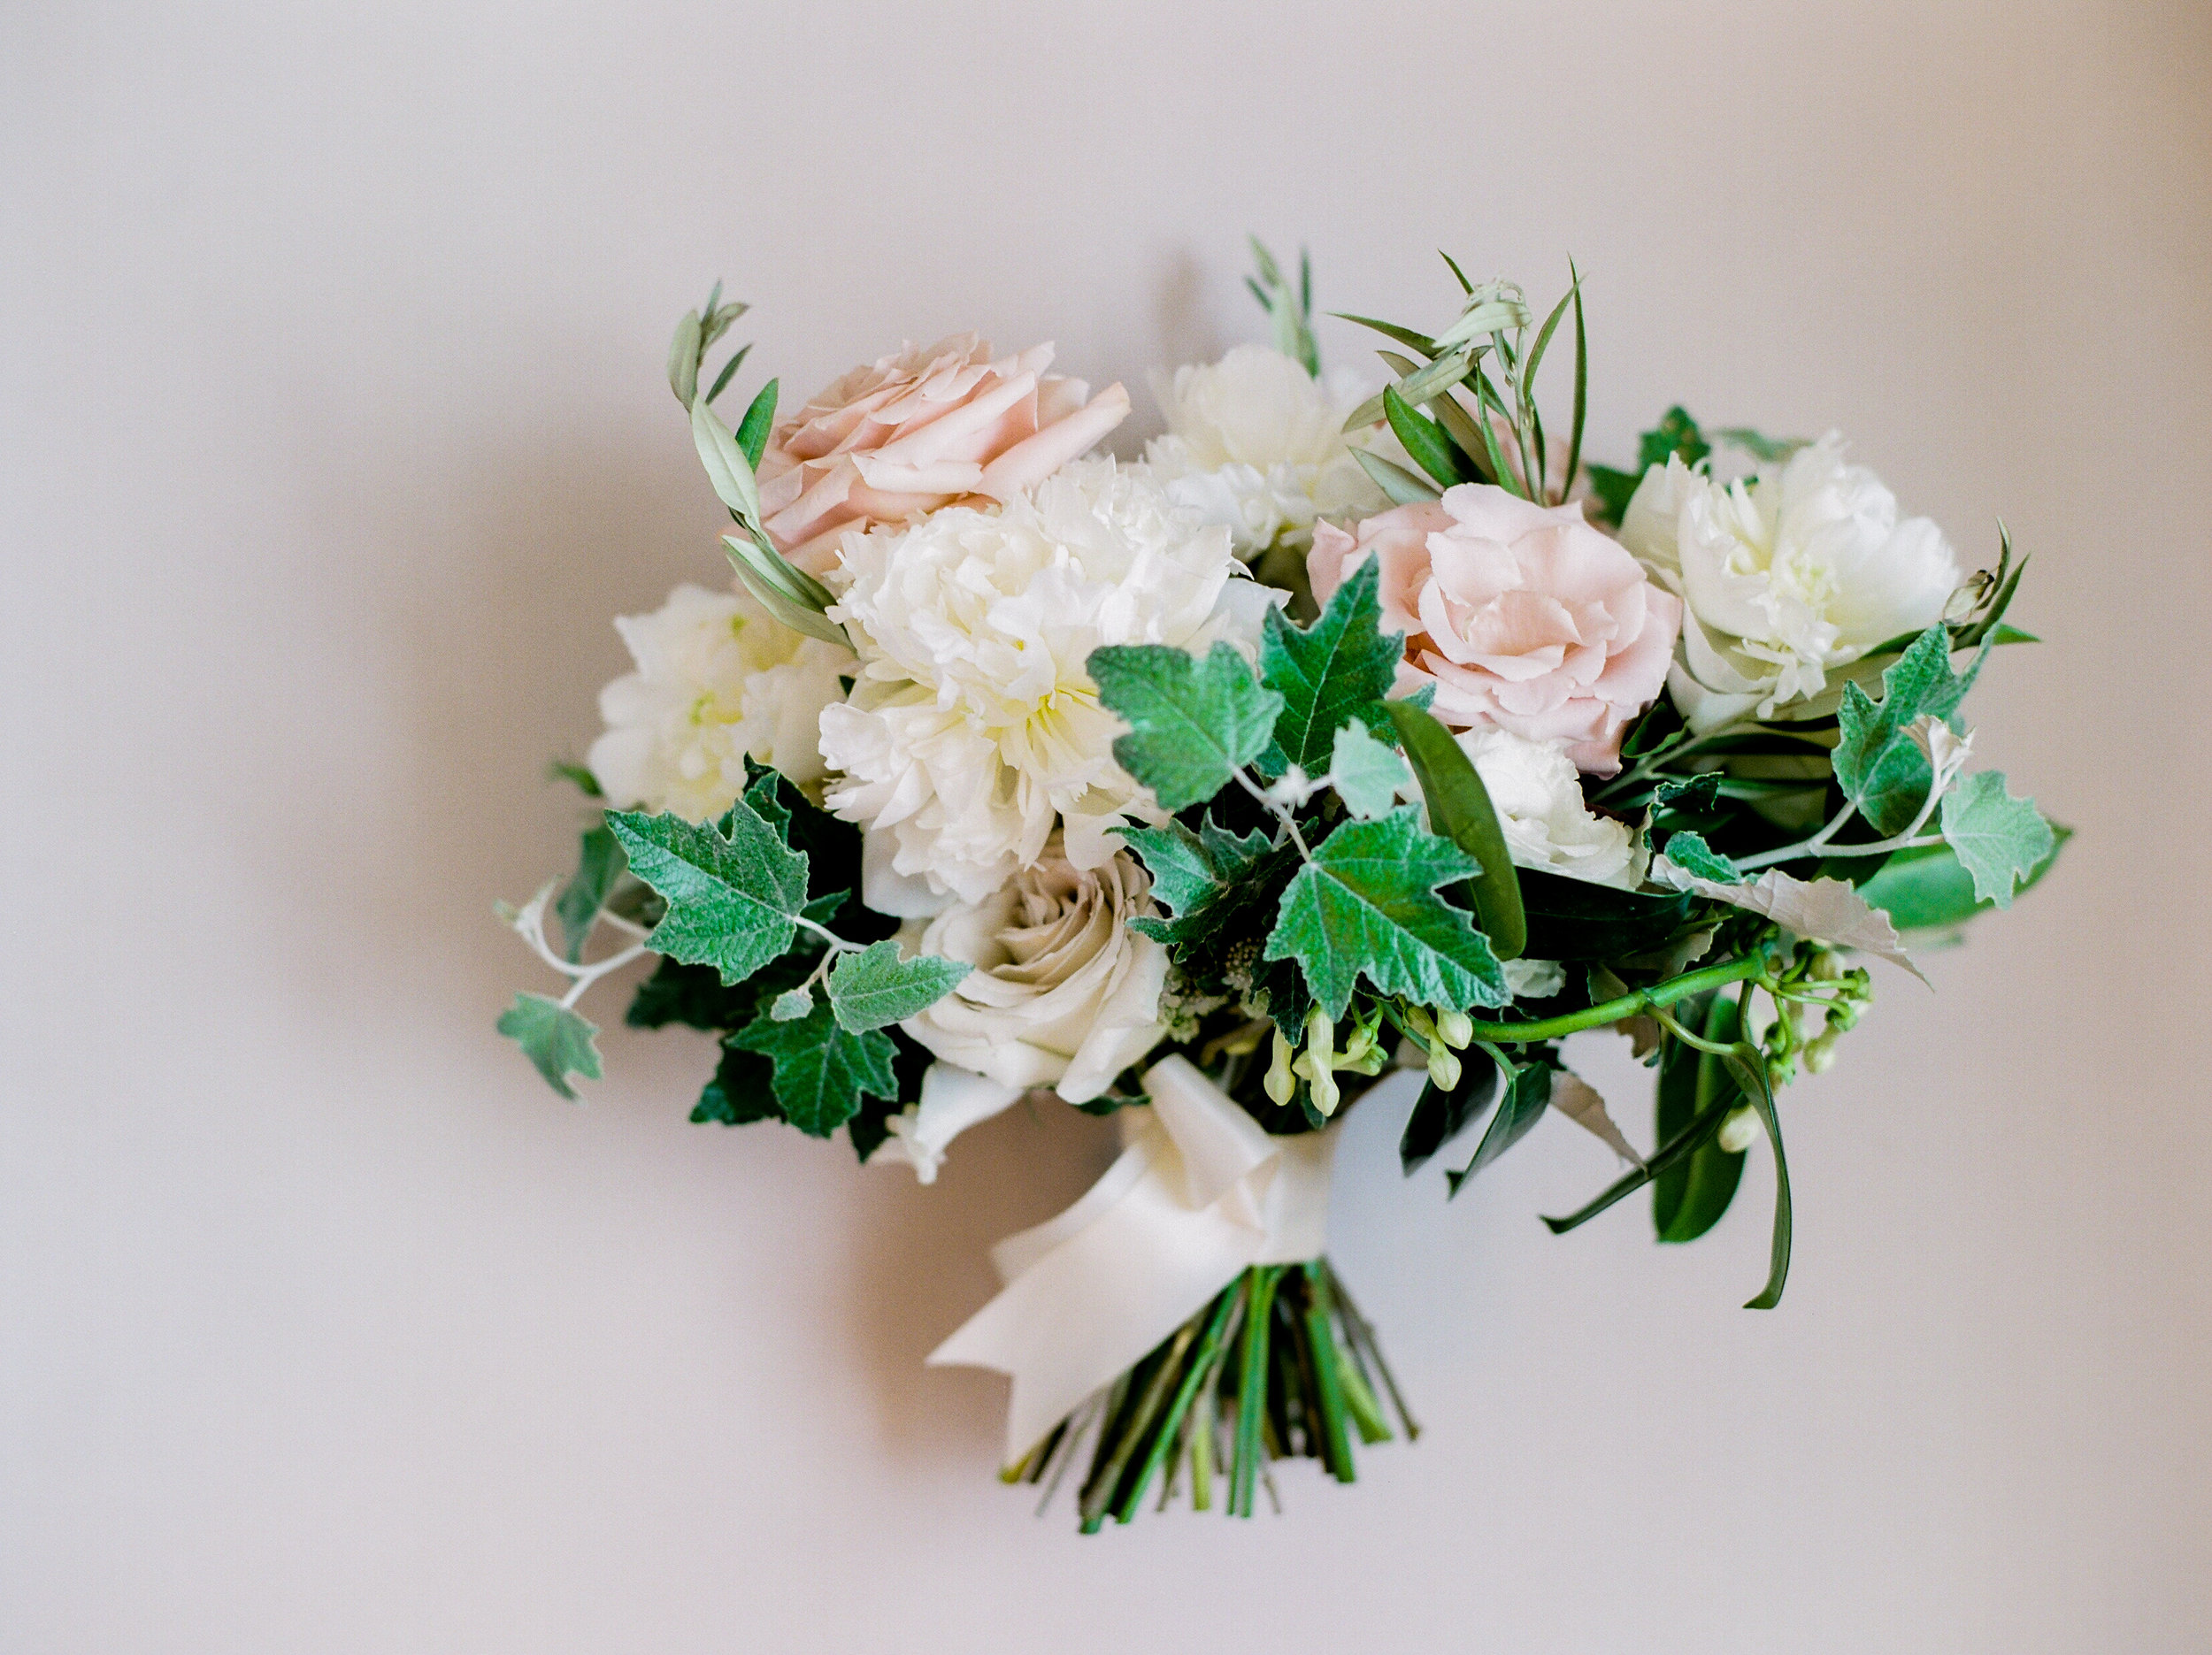 Blush and White Bridal Bouquet - Peony and Rose Bouquet